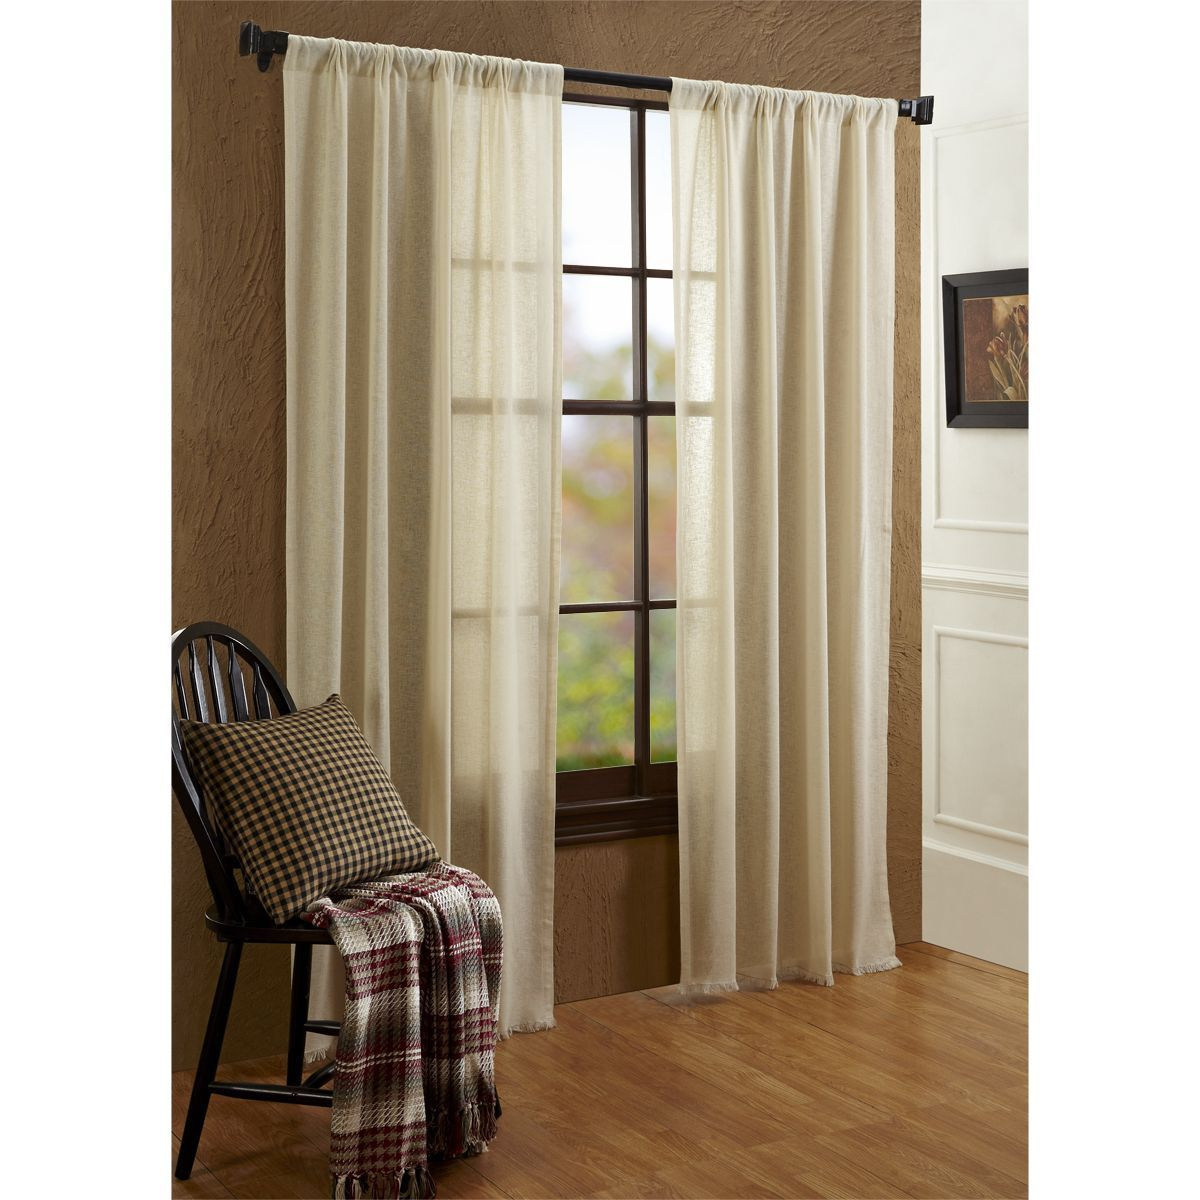 Our Tobacco Cloth Curtain Collection Is Light And Airy Perfect